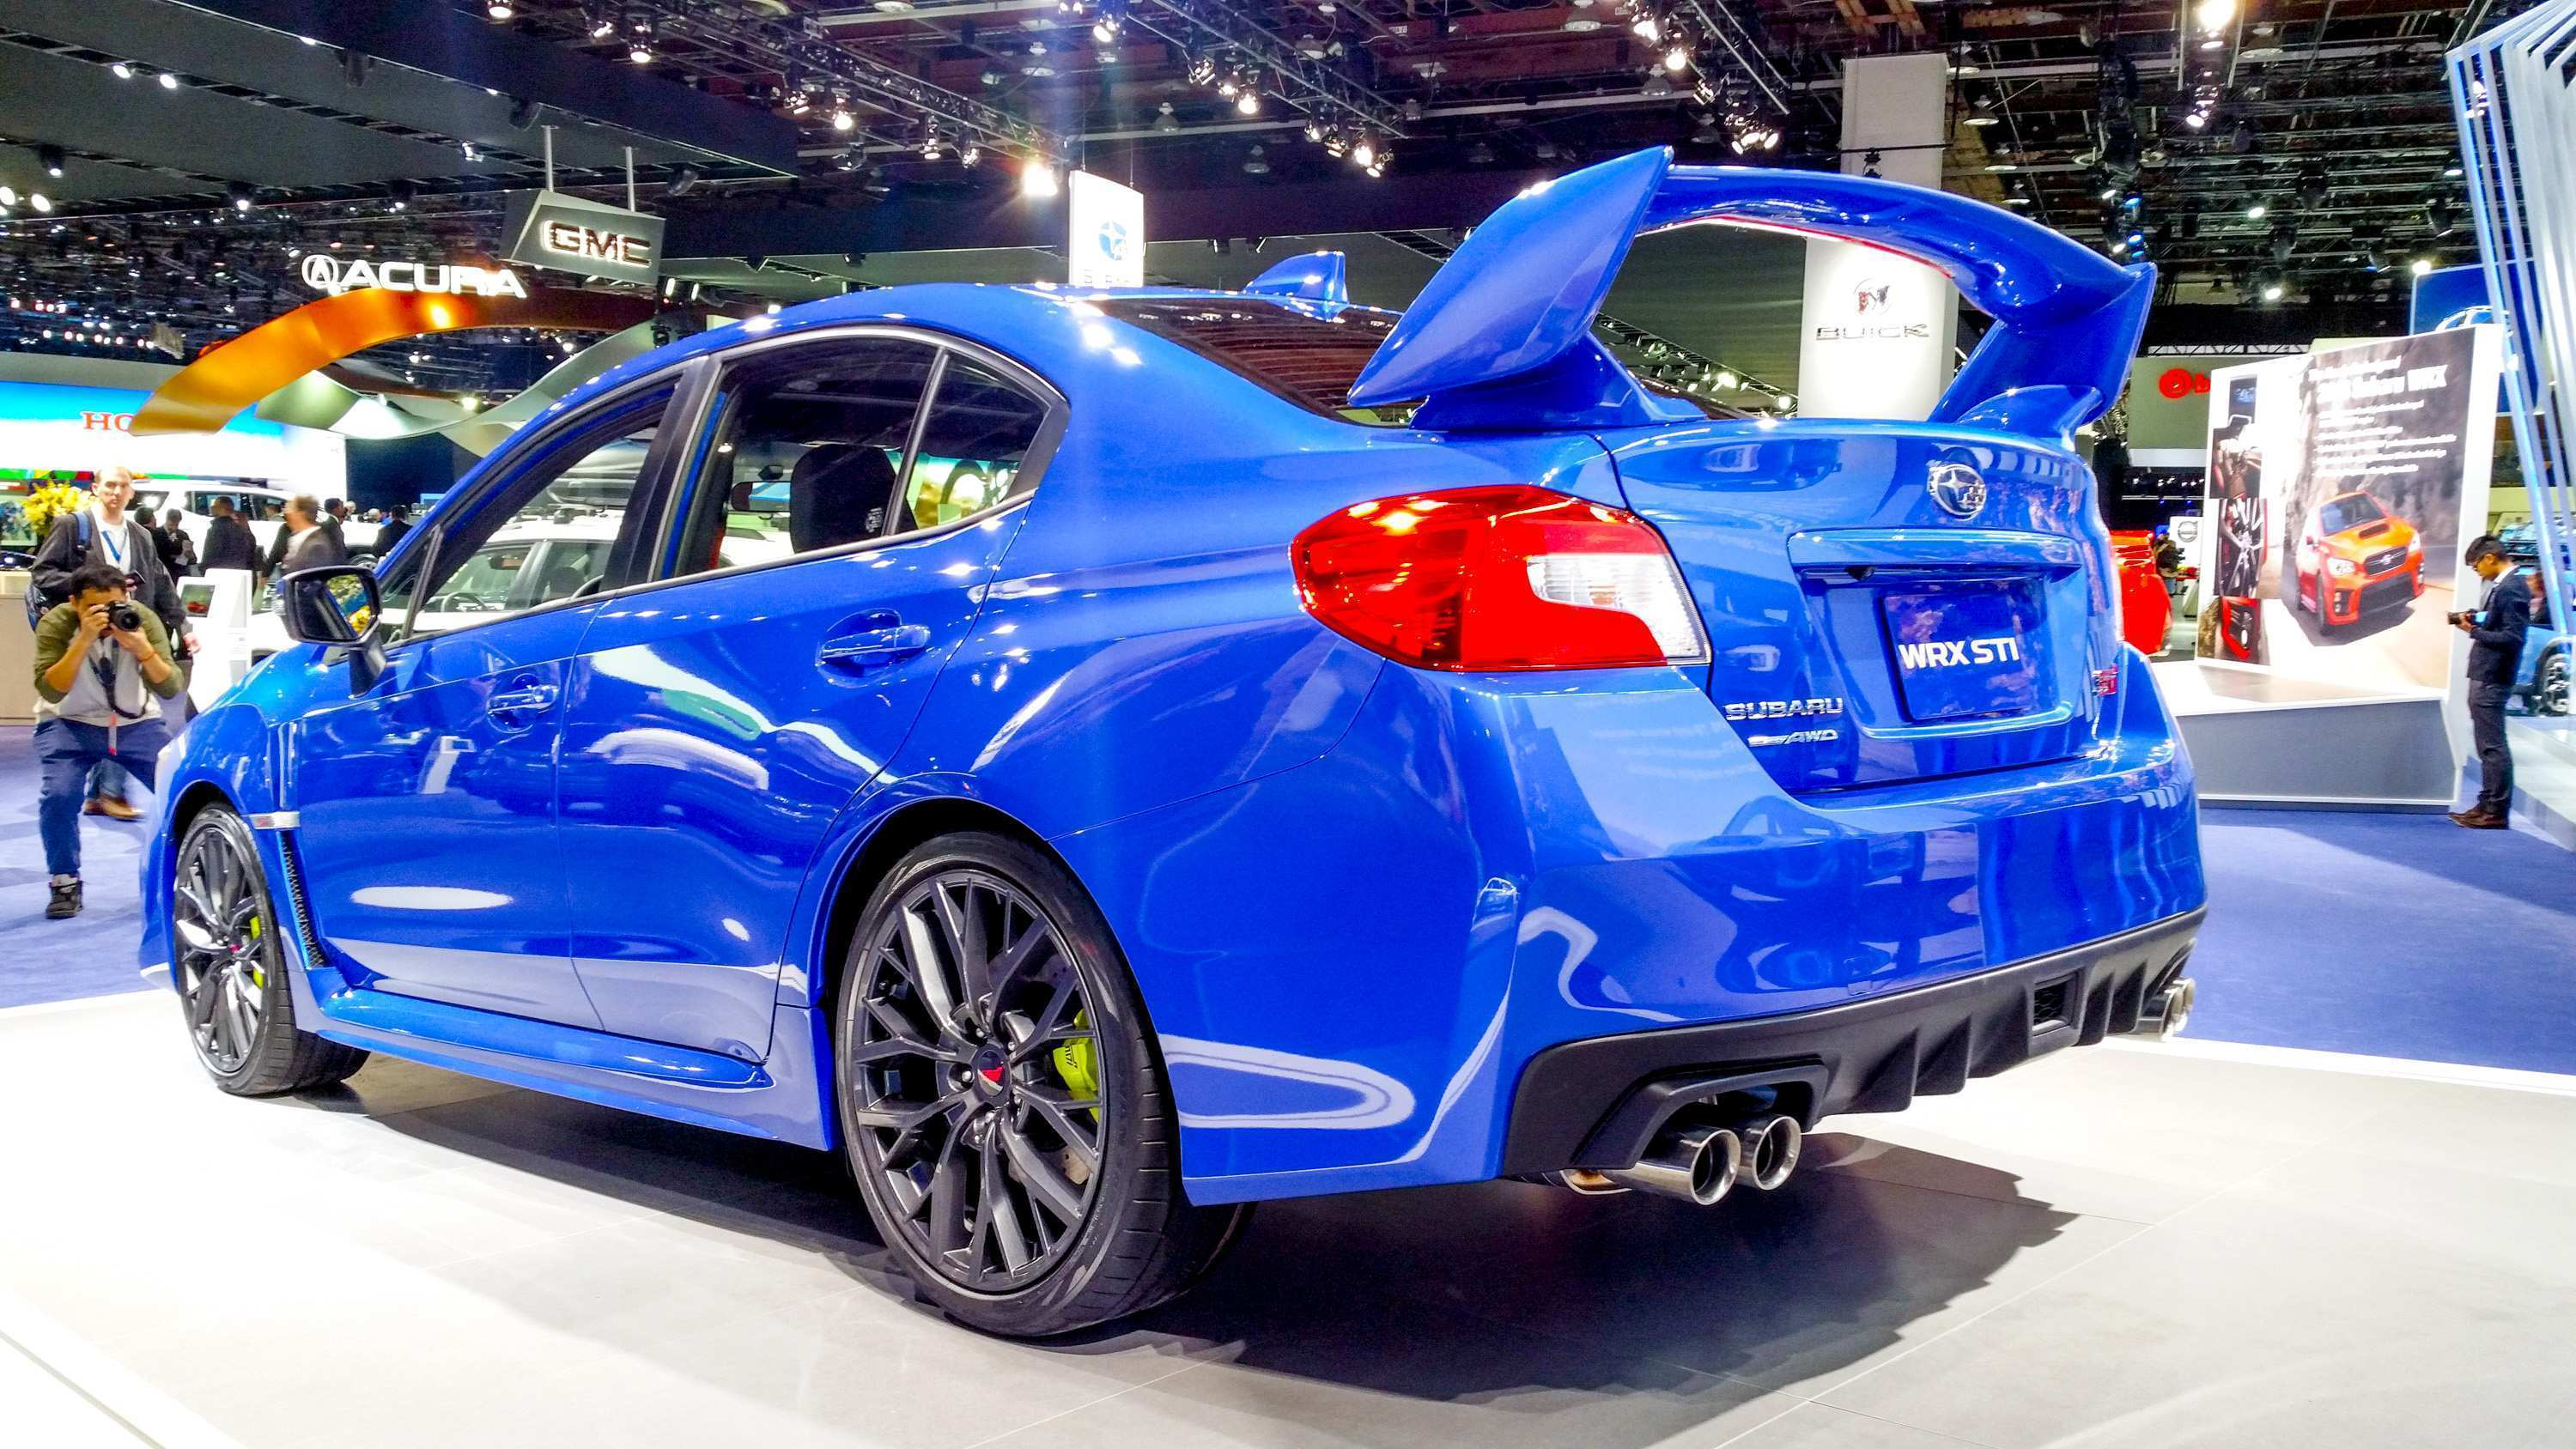 75 Best Review 2020 Subaru Sti Rumors Model for 2020 Subaru Sti Rumors